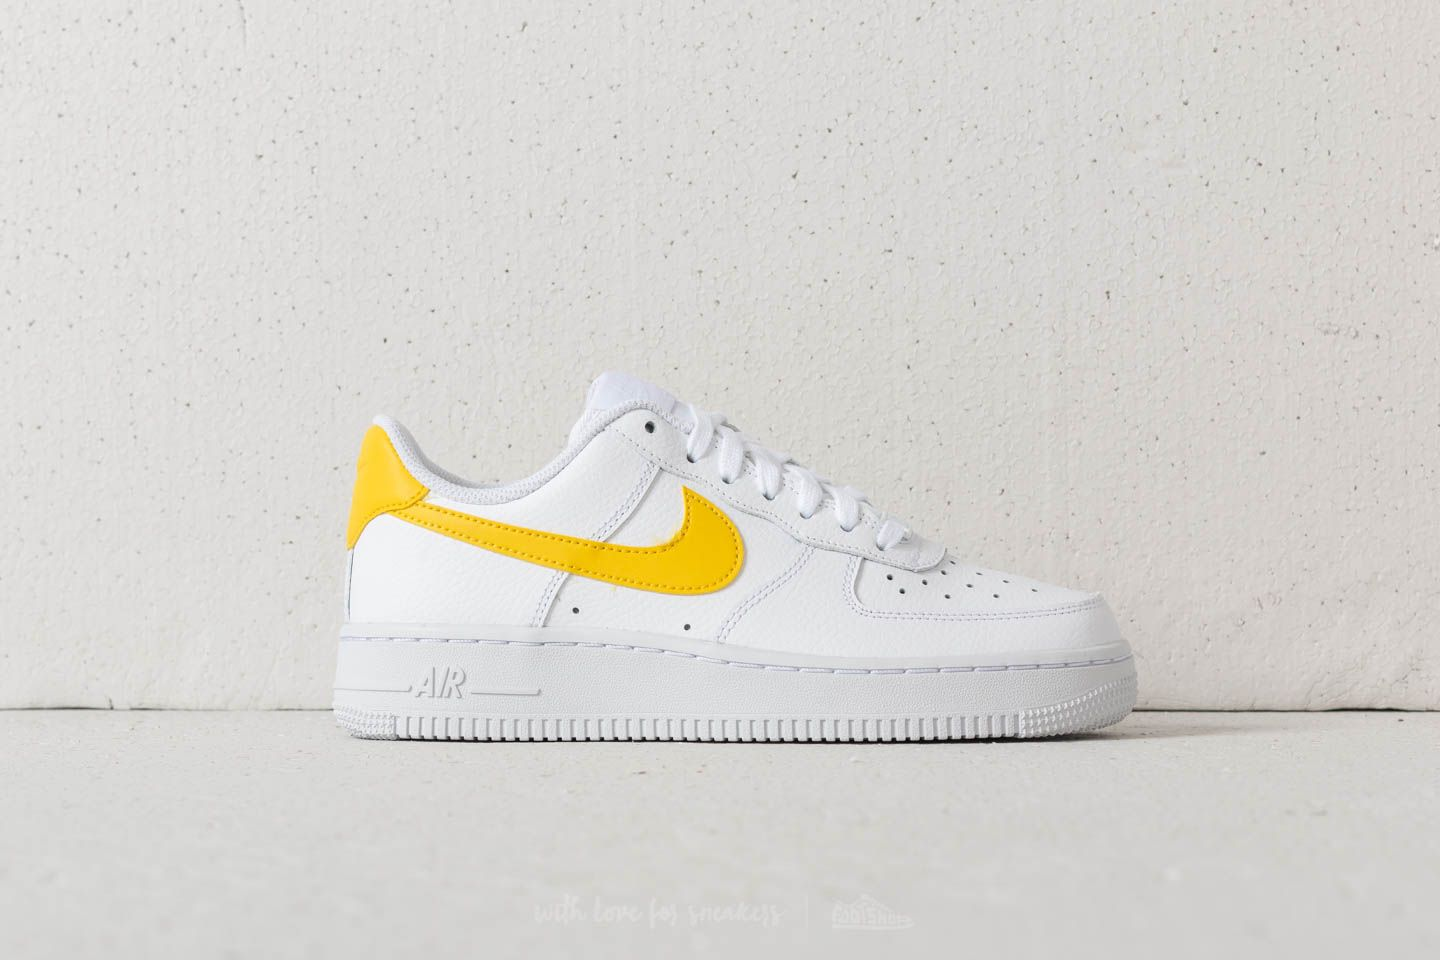 Nike Wmns Air Force 1 '07 White Vivid Sulfur White | Footshop